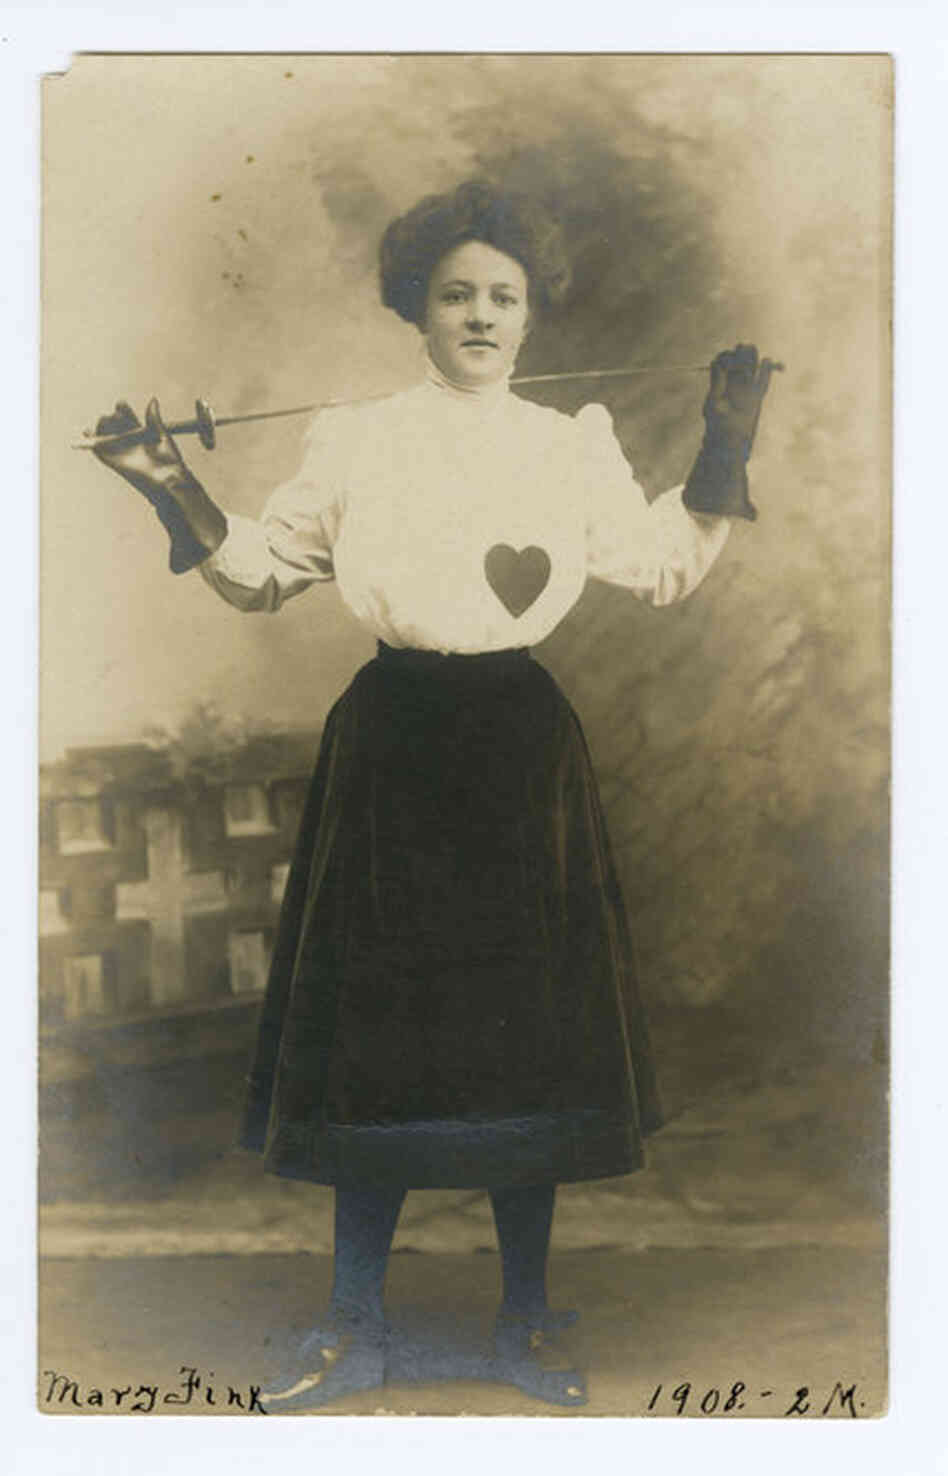 """Mary Fink, May 2, 1908."" Female fencer, photographer C.E. Kerfoot, Washington, D.C."